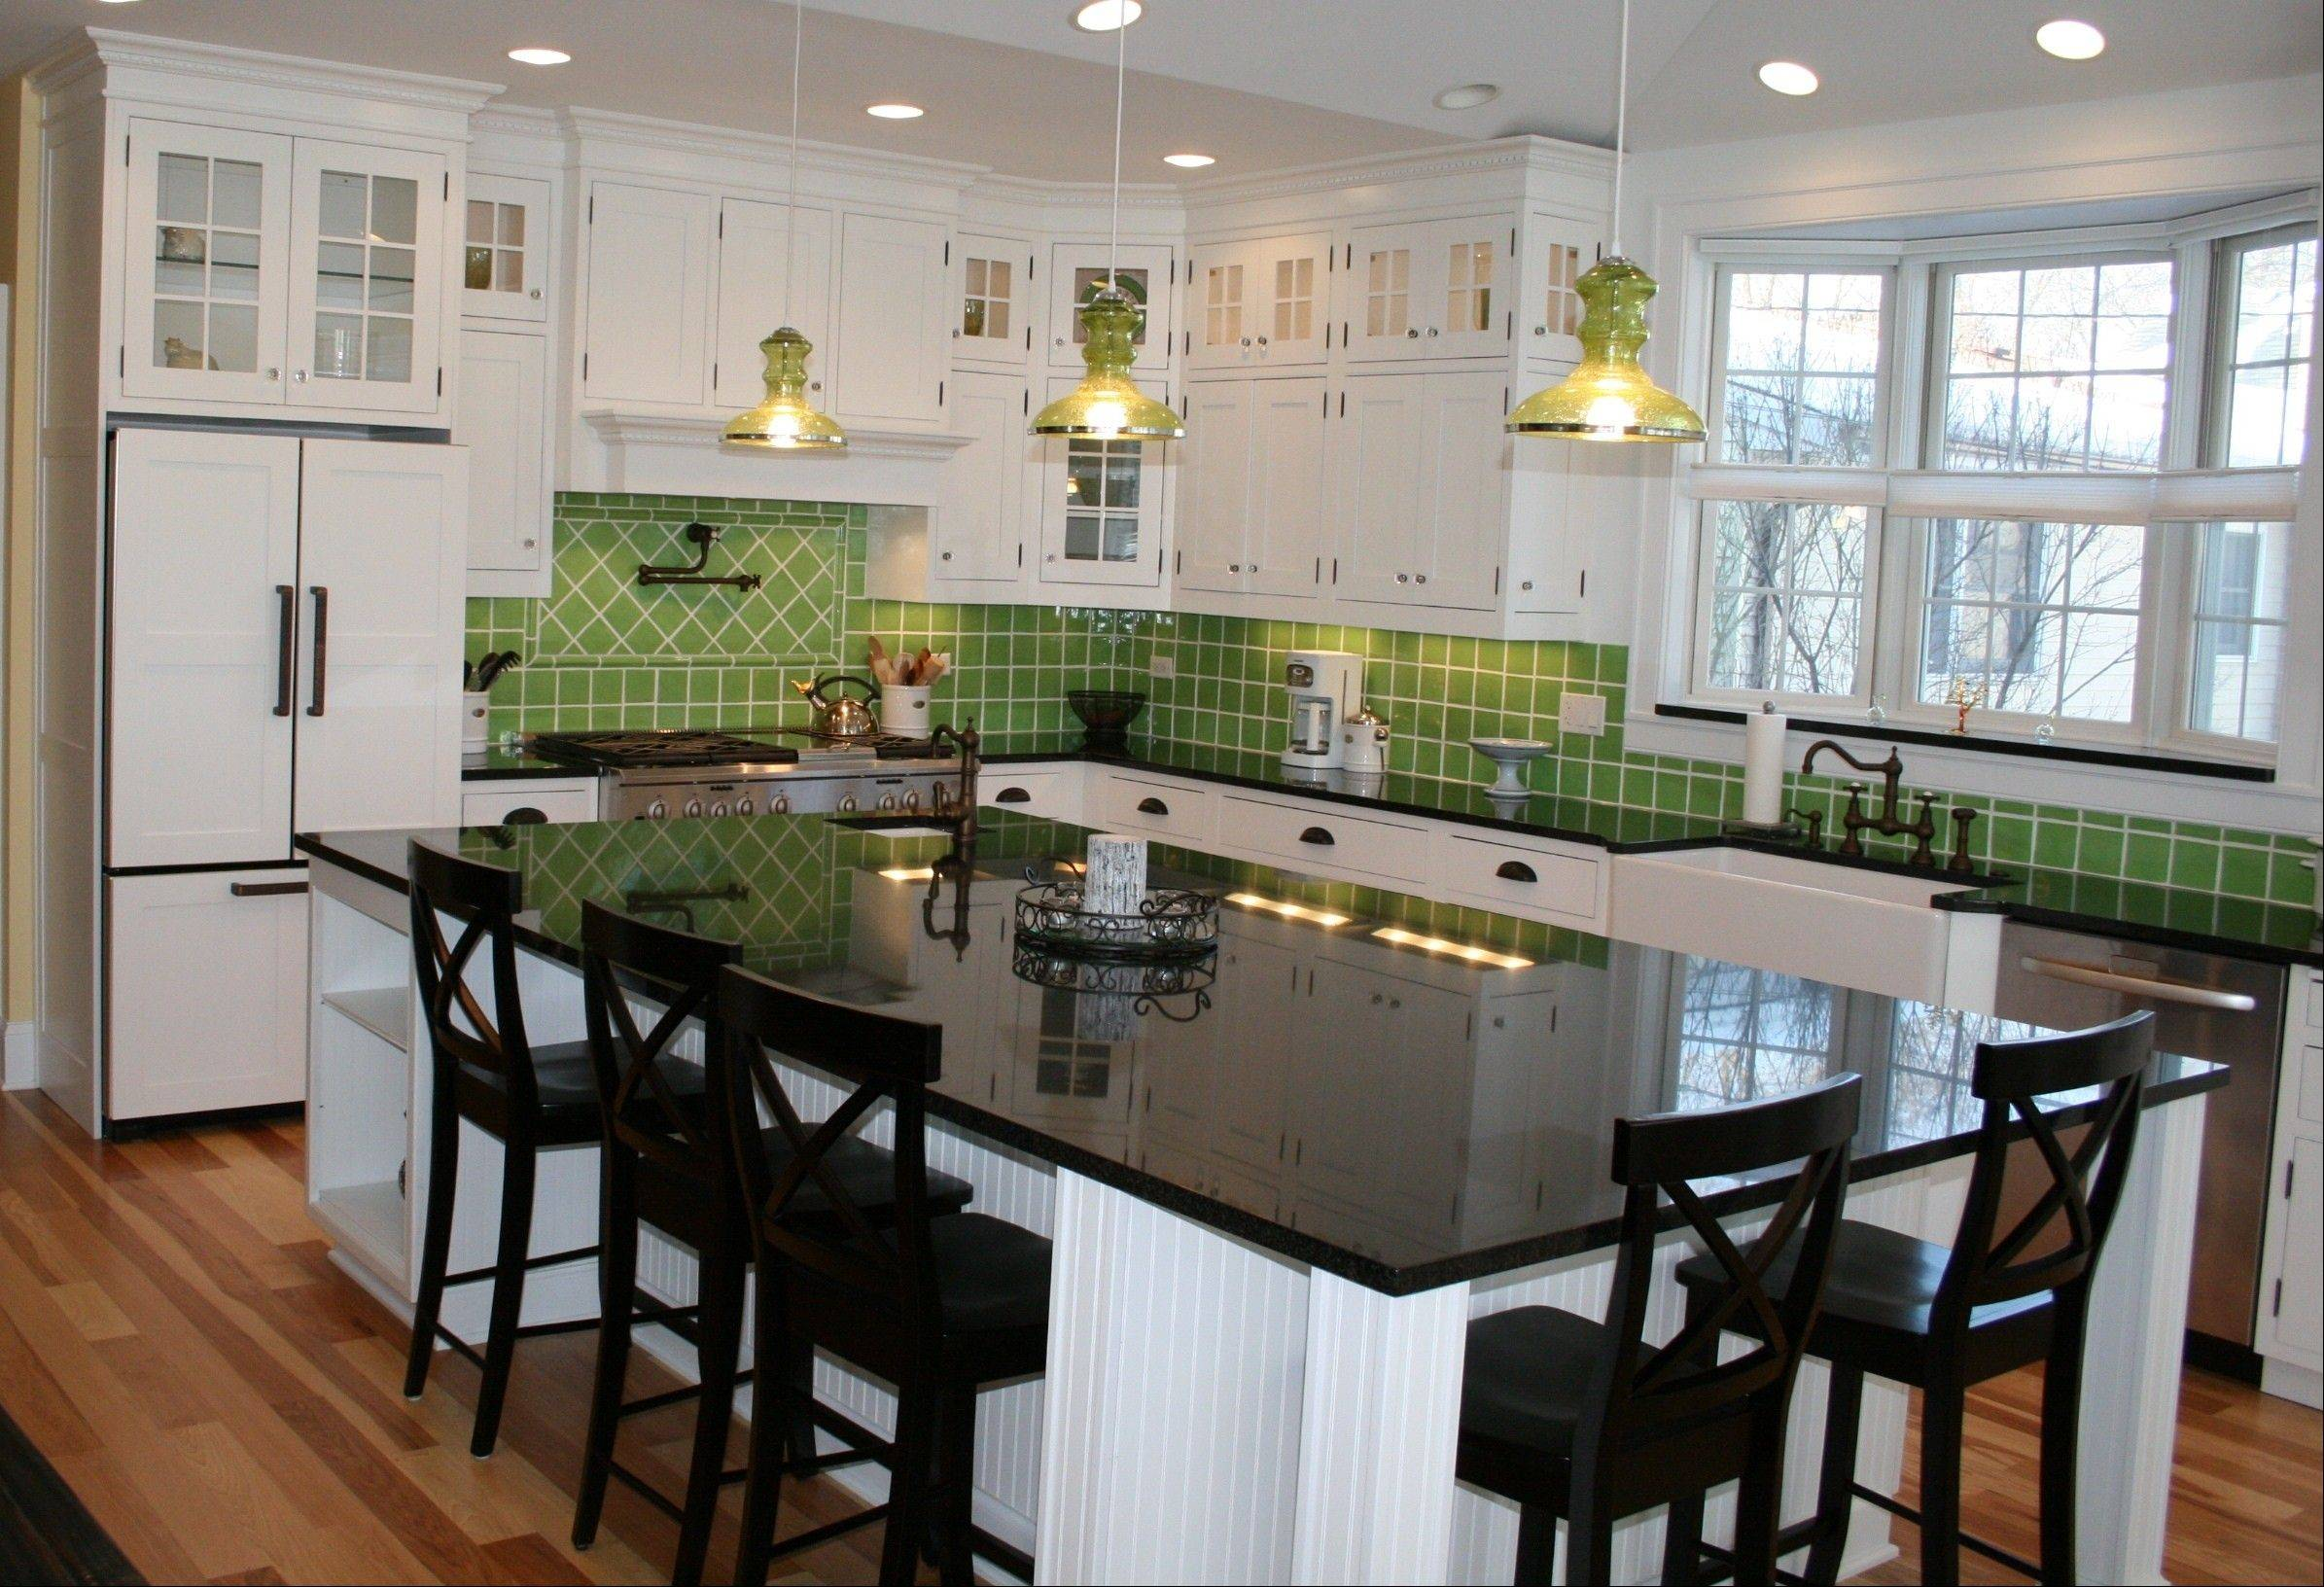 Solid Granite Backsplashes Are No Longer As Popular In The Kitchen, Giving  Way To Stone